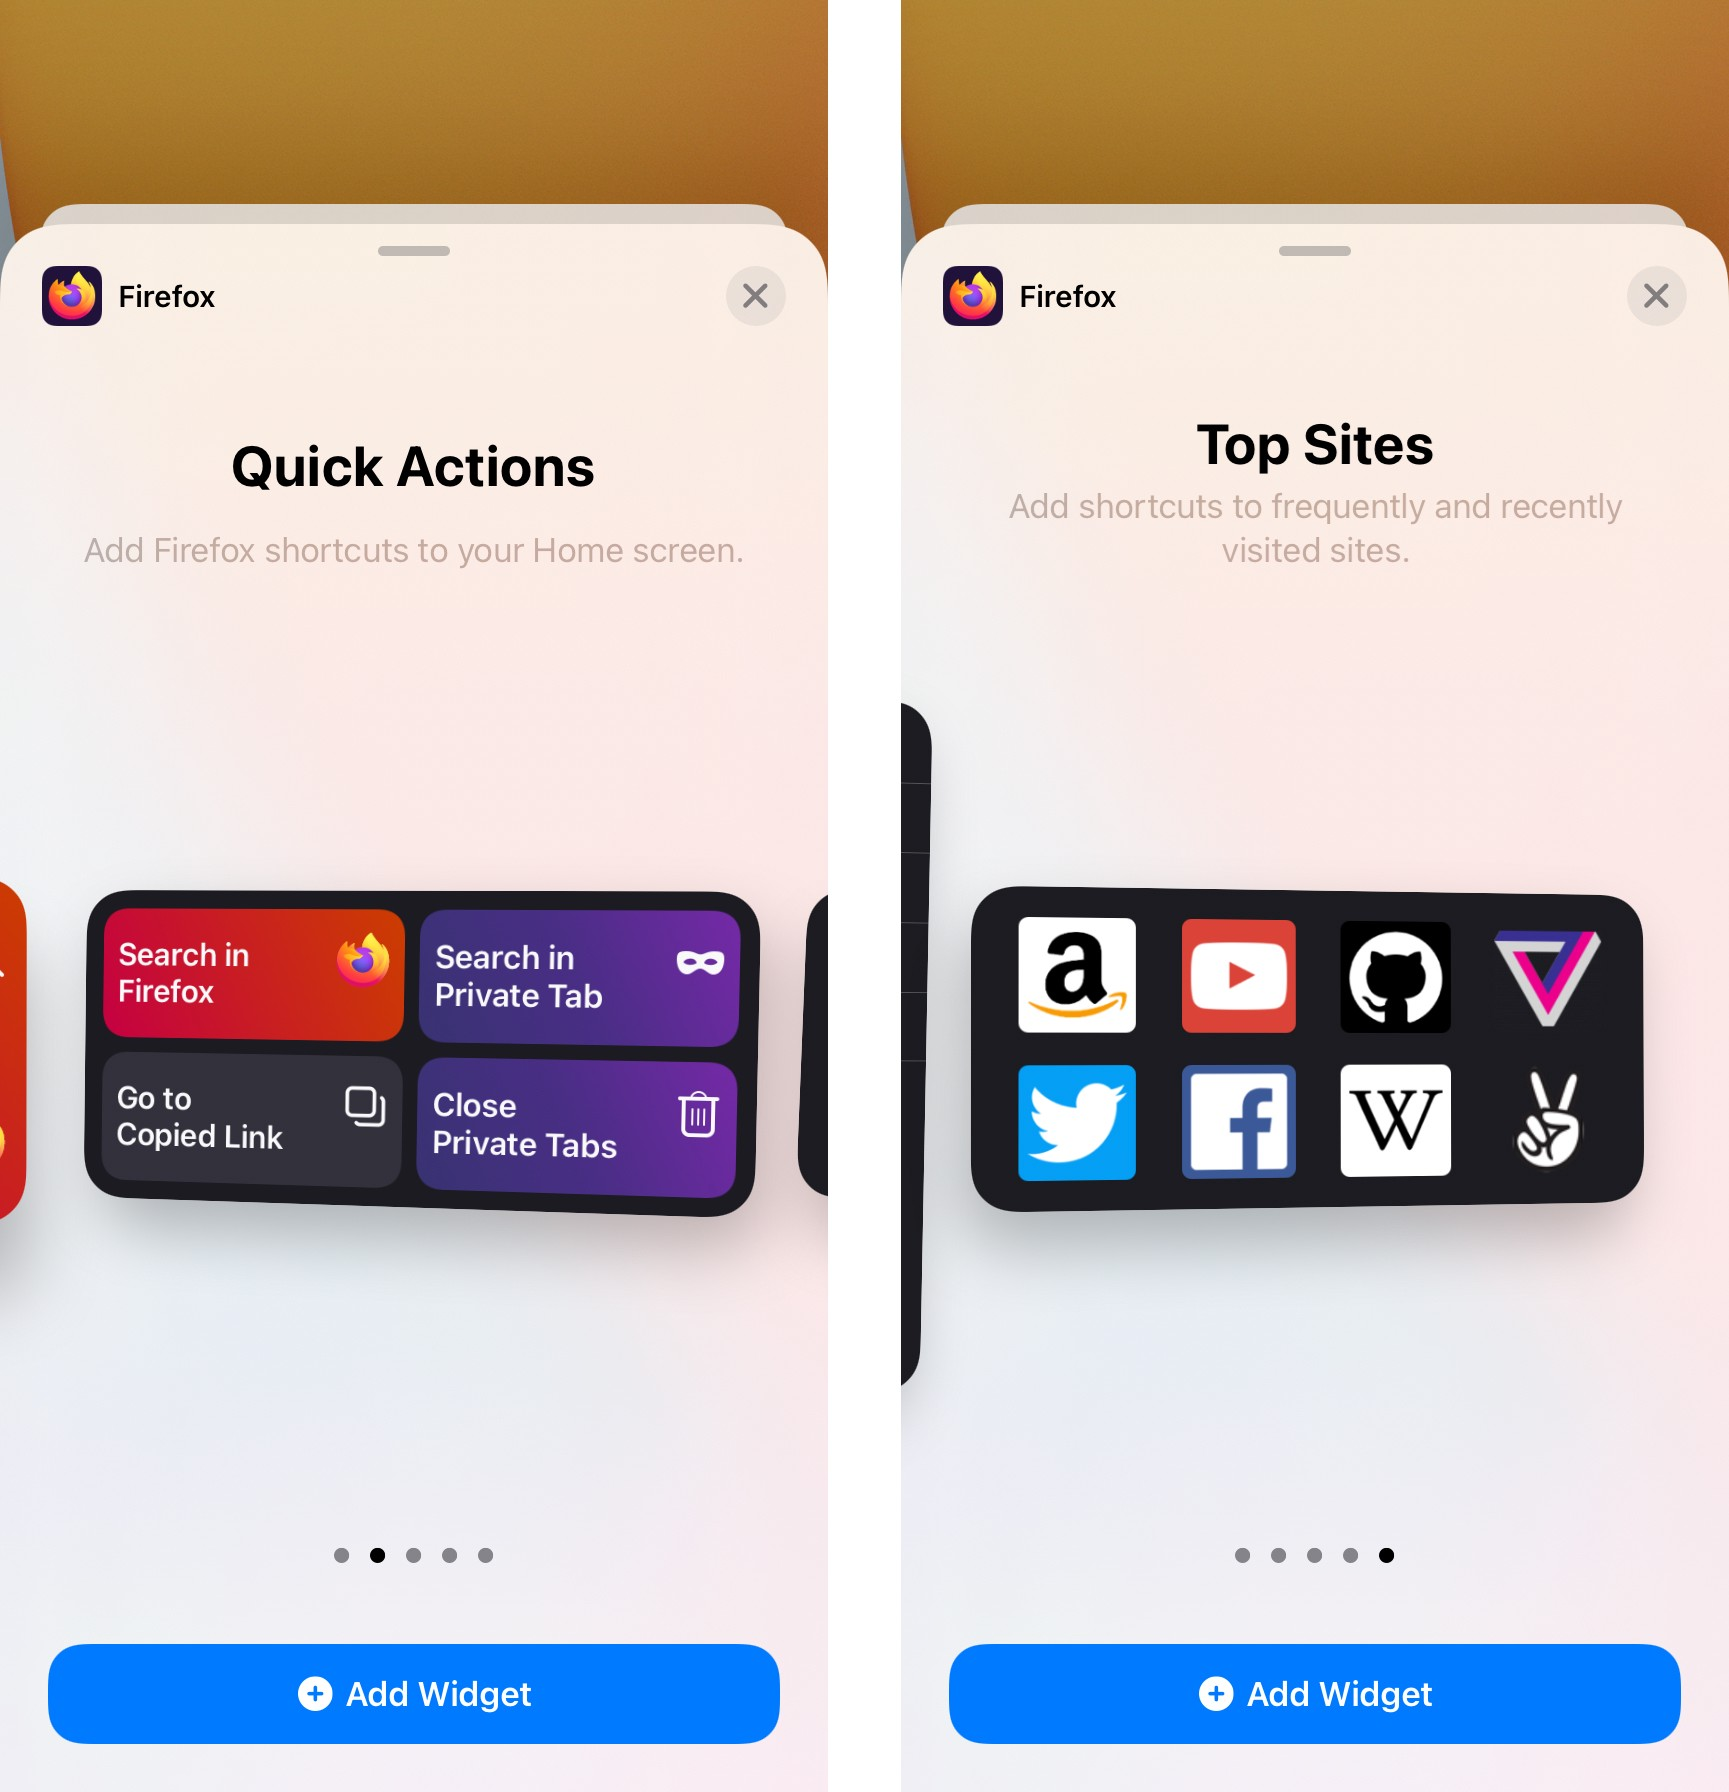 Images of two Firefox iOS widgets: Quick Actions and Top Sites.